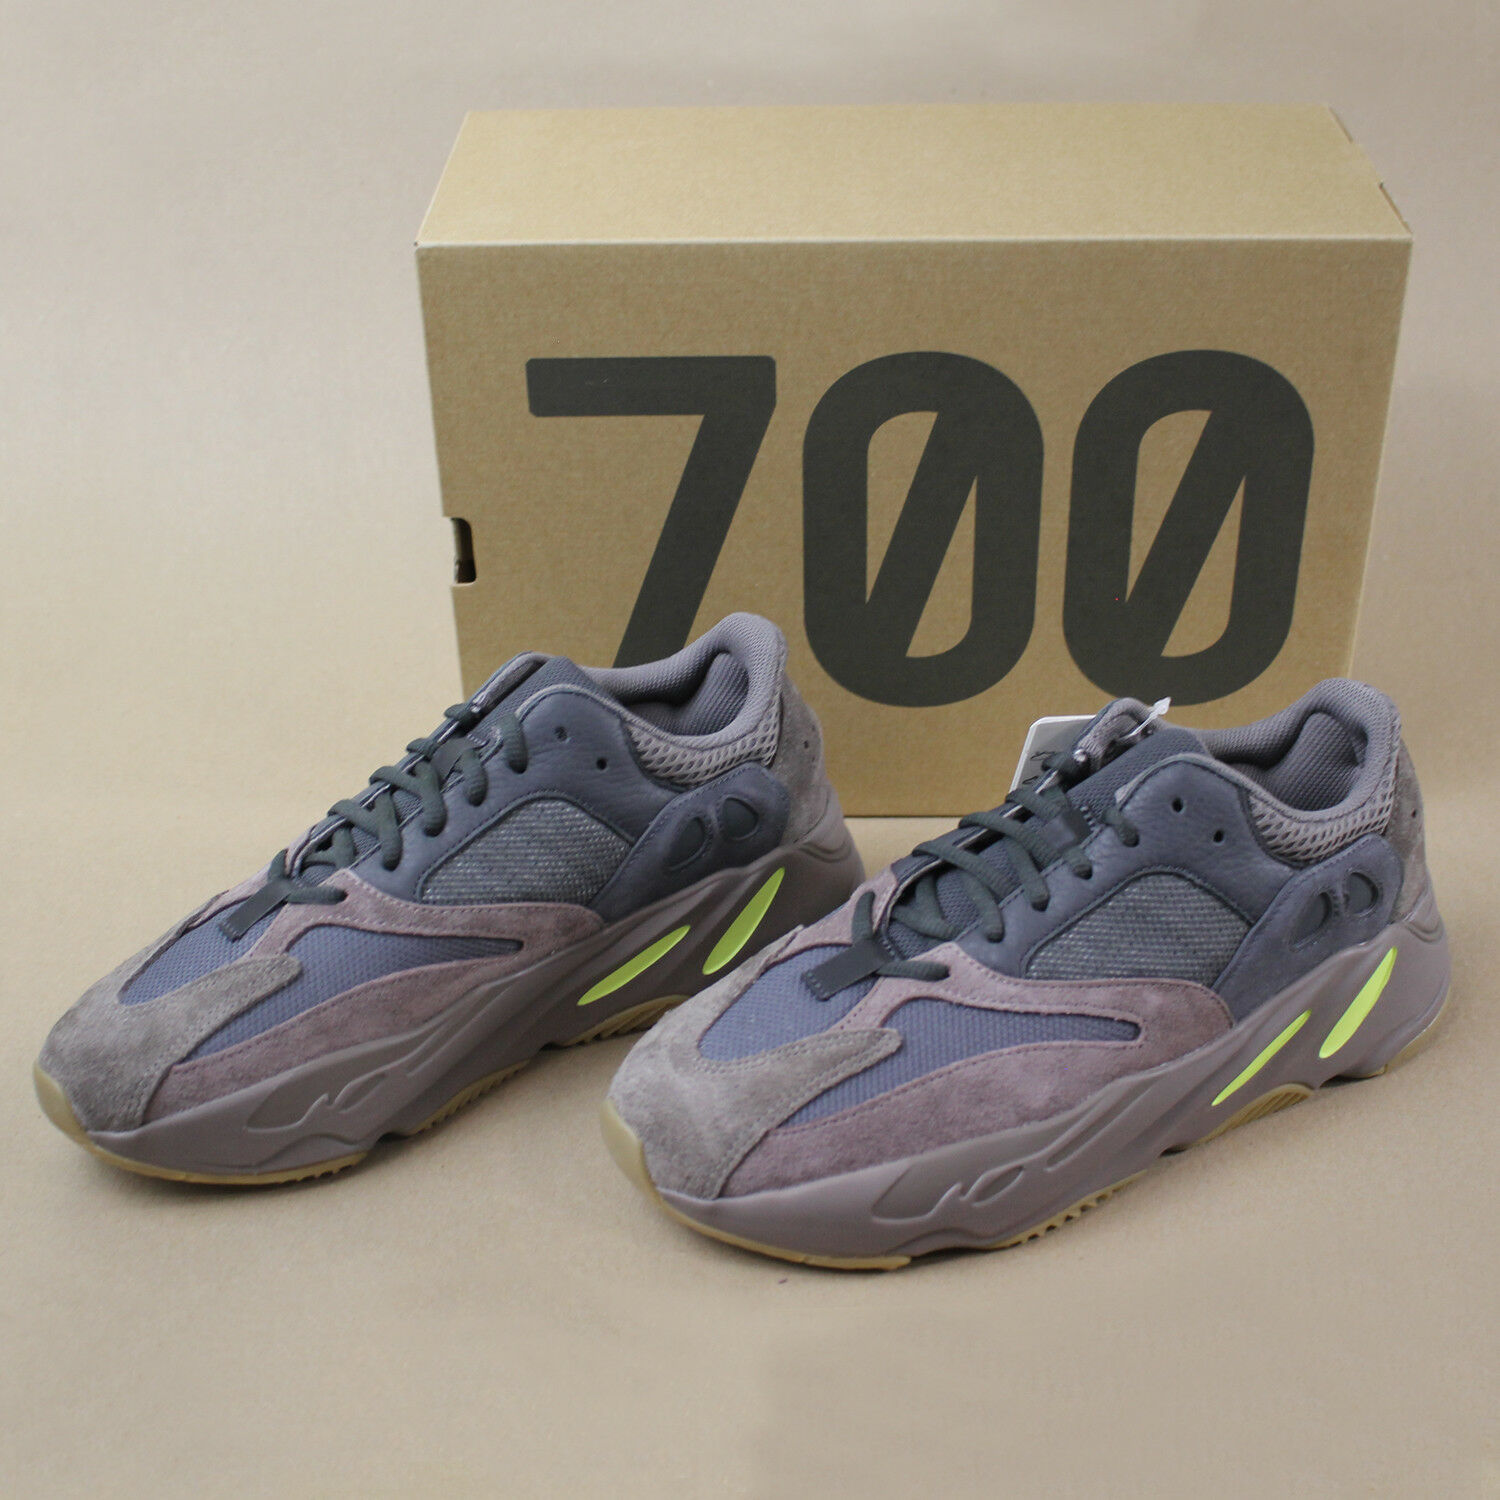 7ce0a9712 Yeezy Boost 700 Mauve By Adidas Size 9.5 NEW IN BOX with Free ...